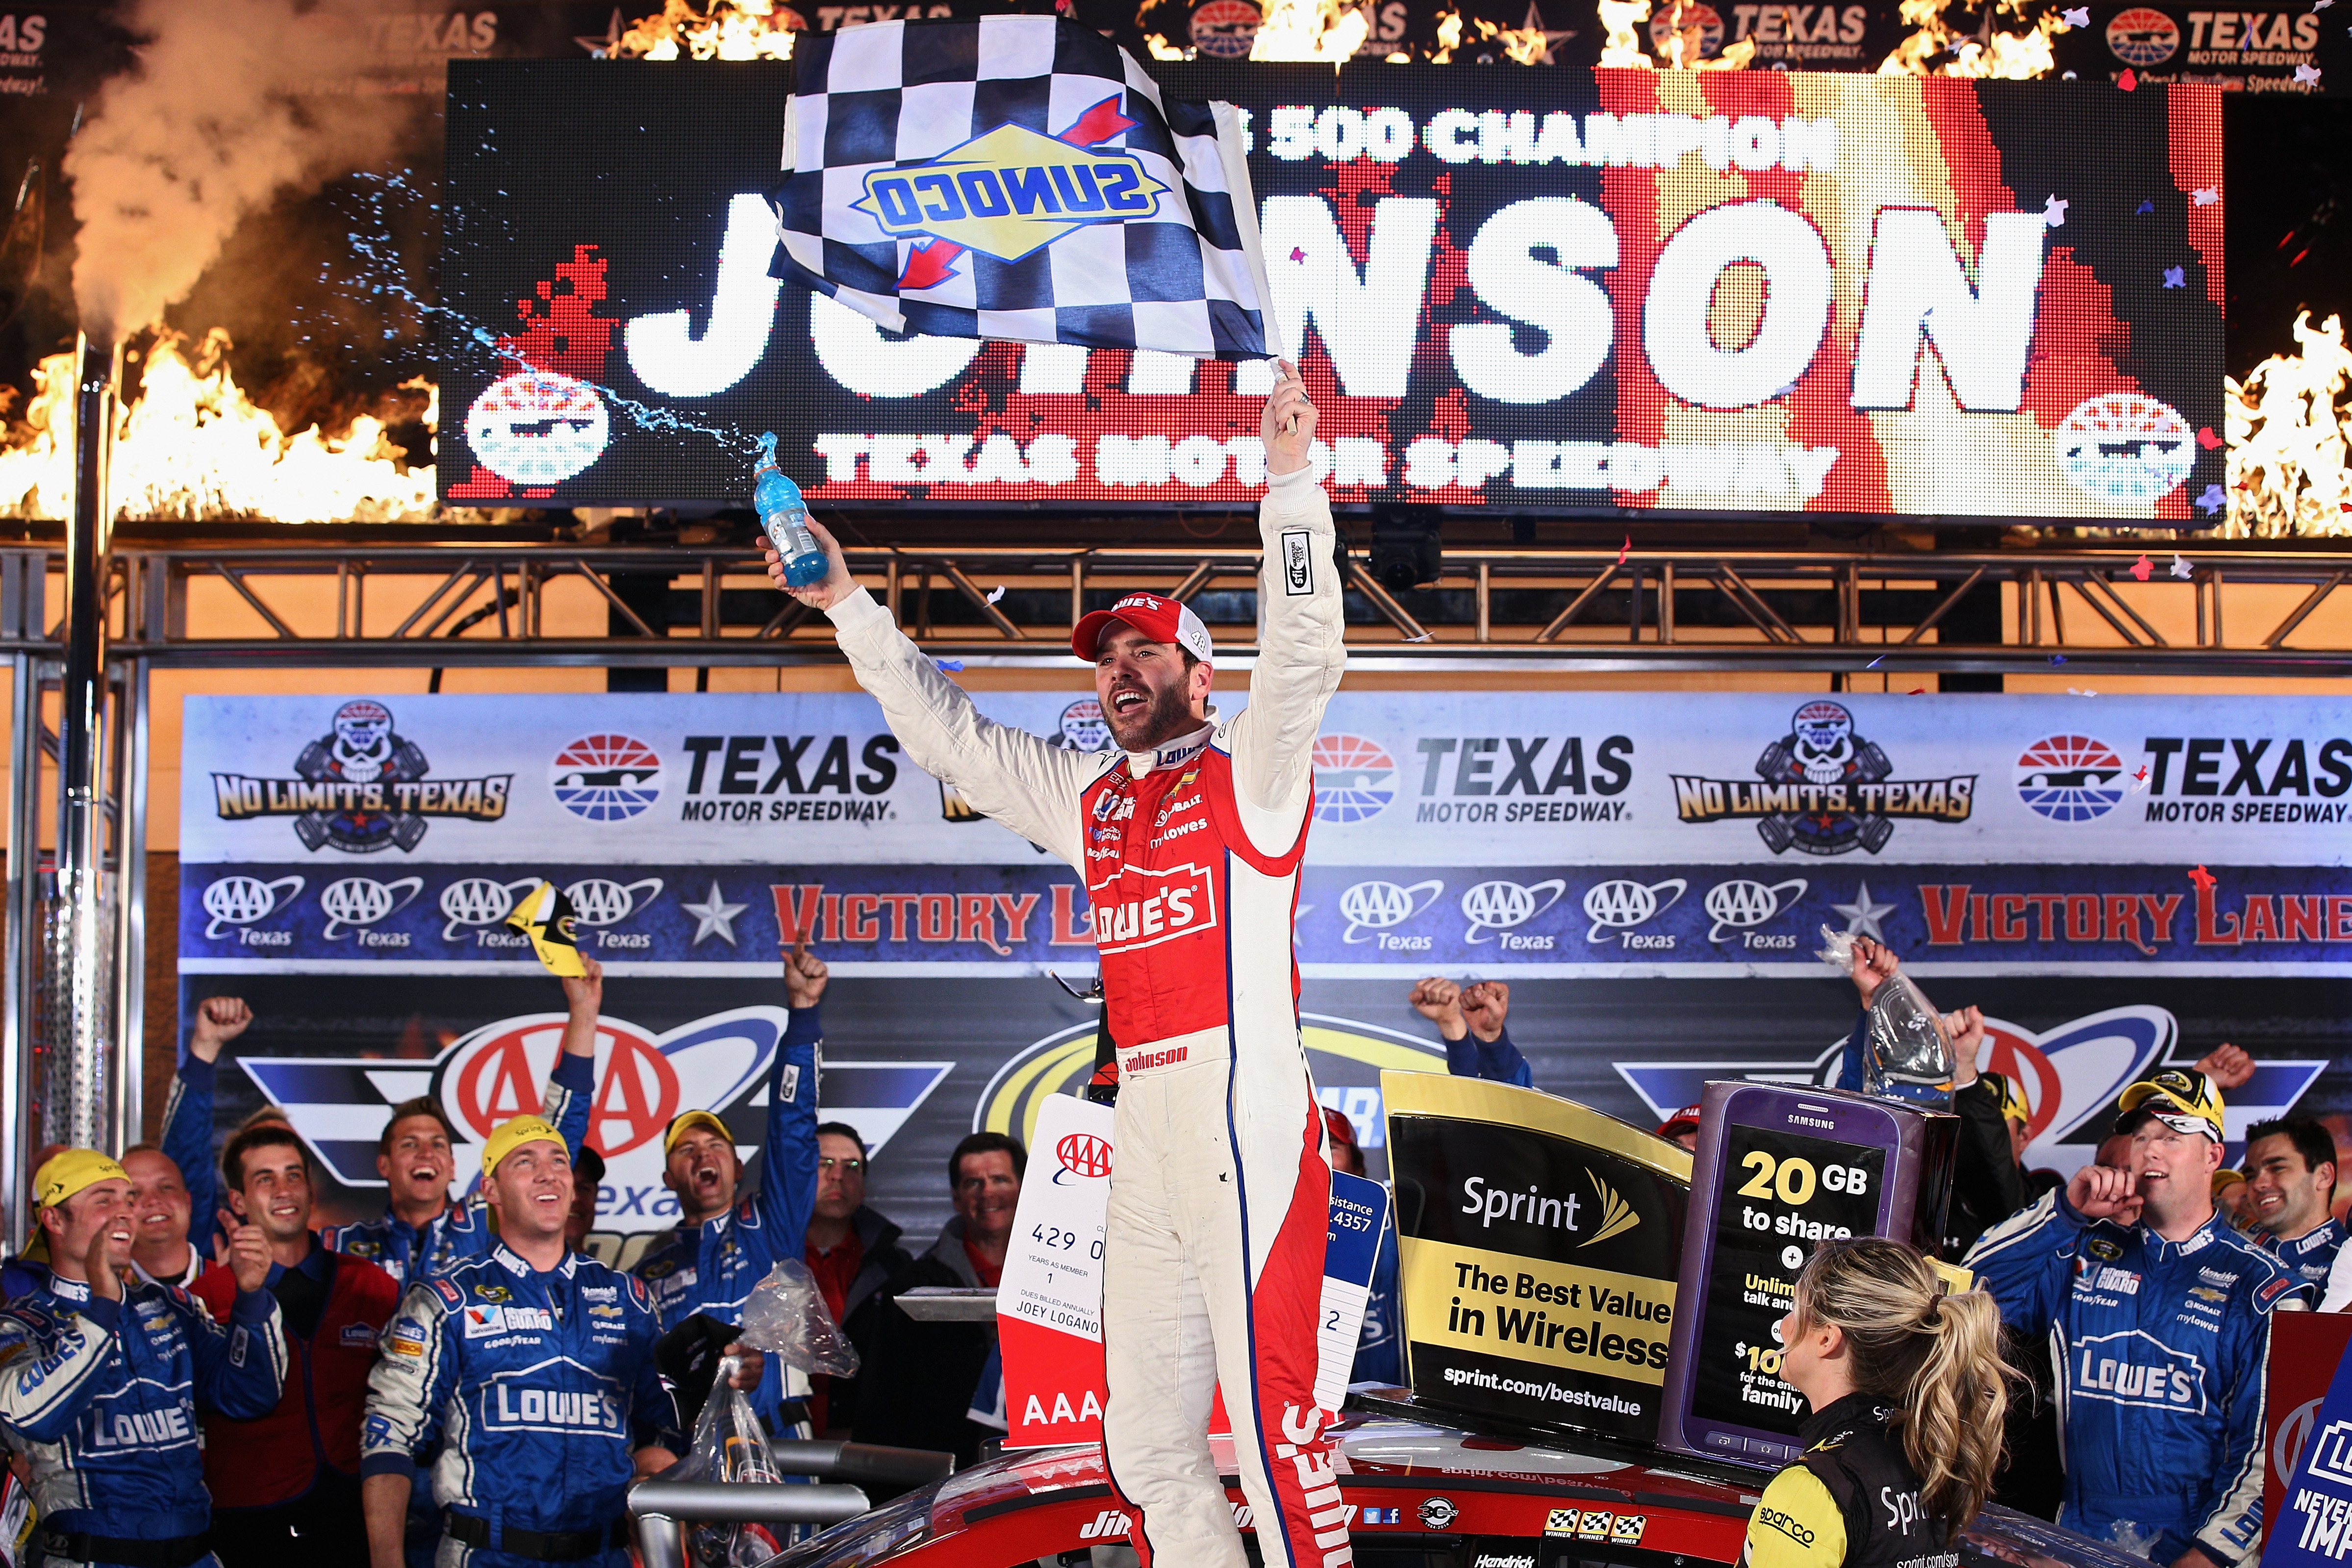 Nascar aaa texas 500 sprint cup series 2015 px sports for Texas motor speedway 2015 schedule